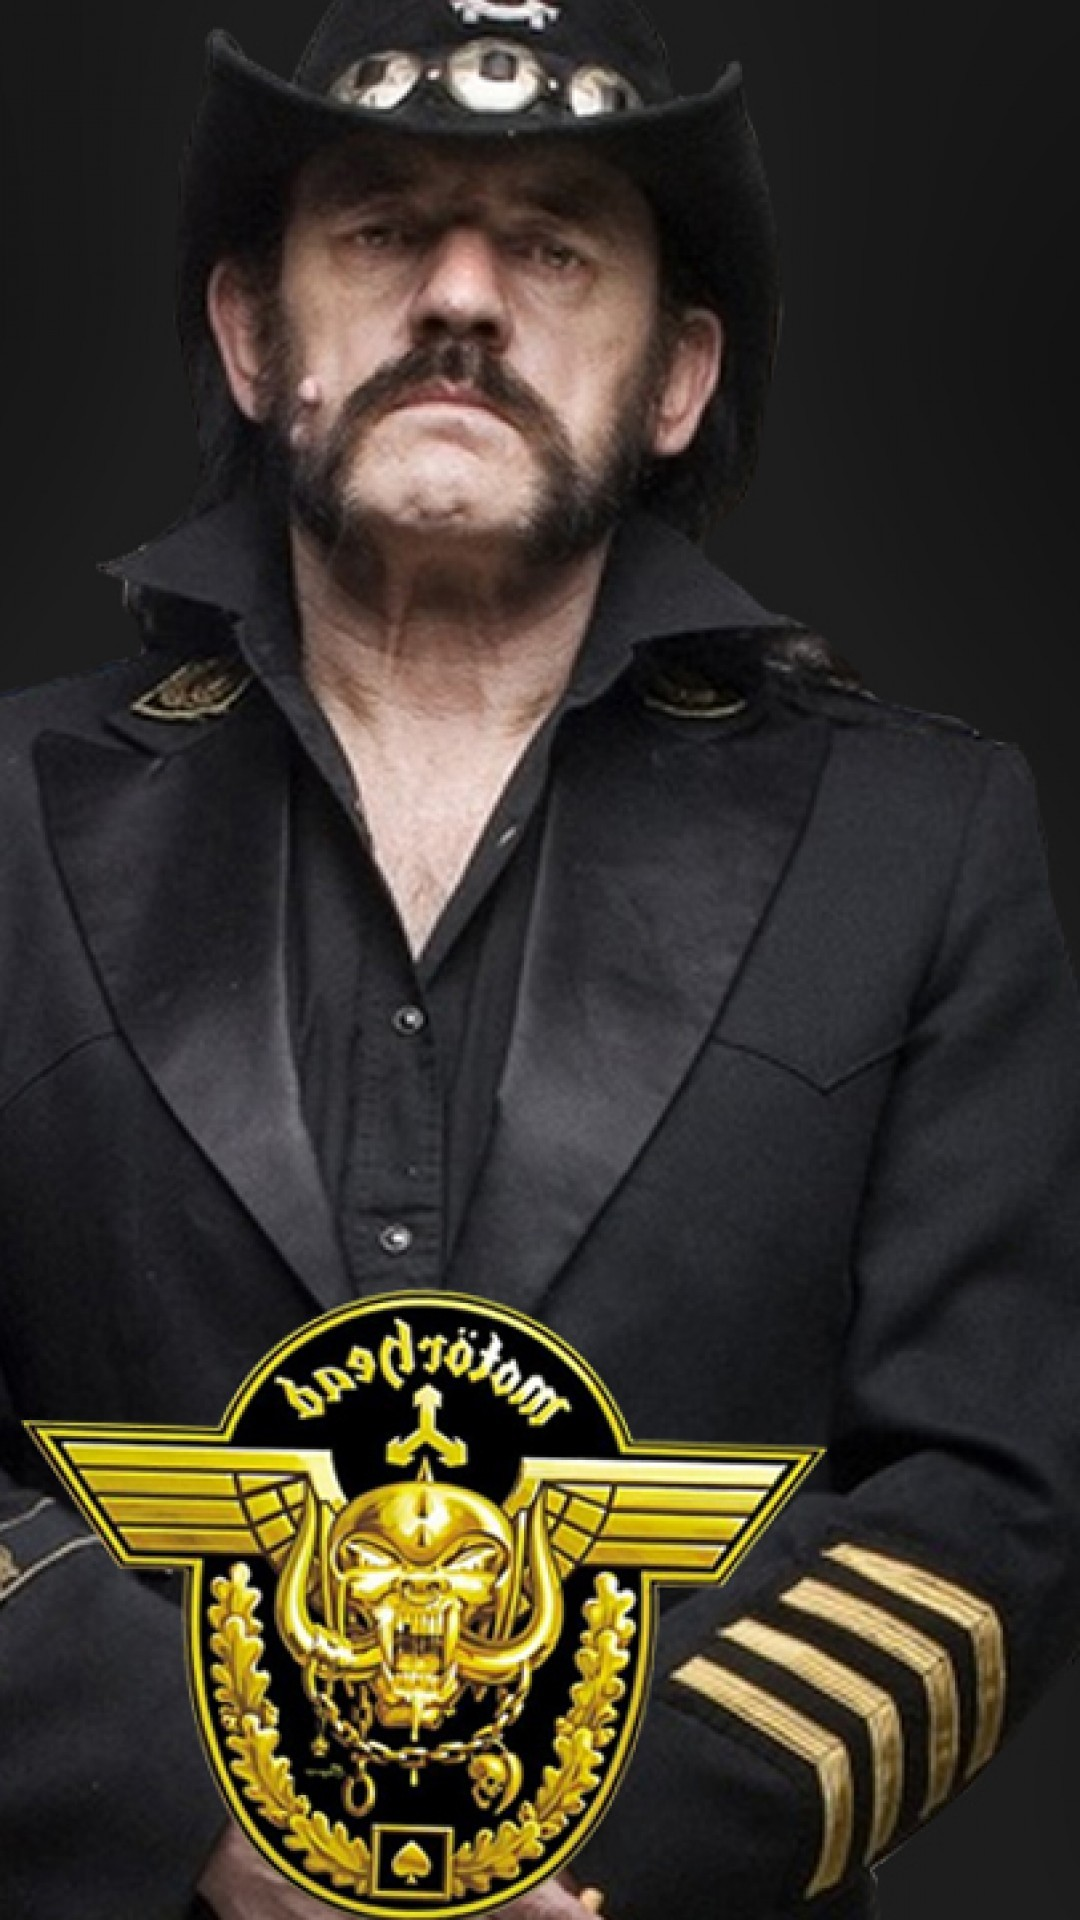 Lemmy Kilmister, Rock Music, Motorhead, Wallpaper, Hd, Widescreen, Melody,